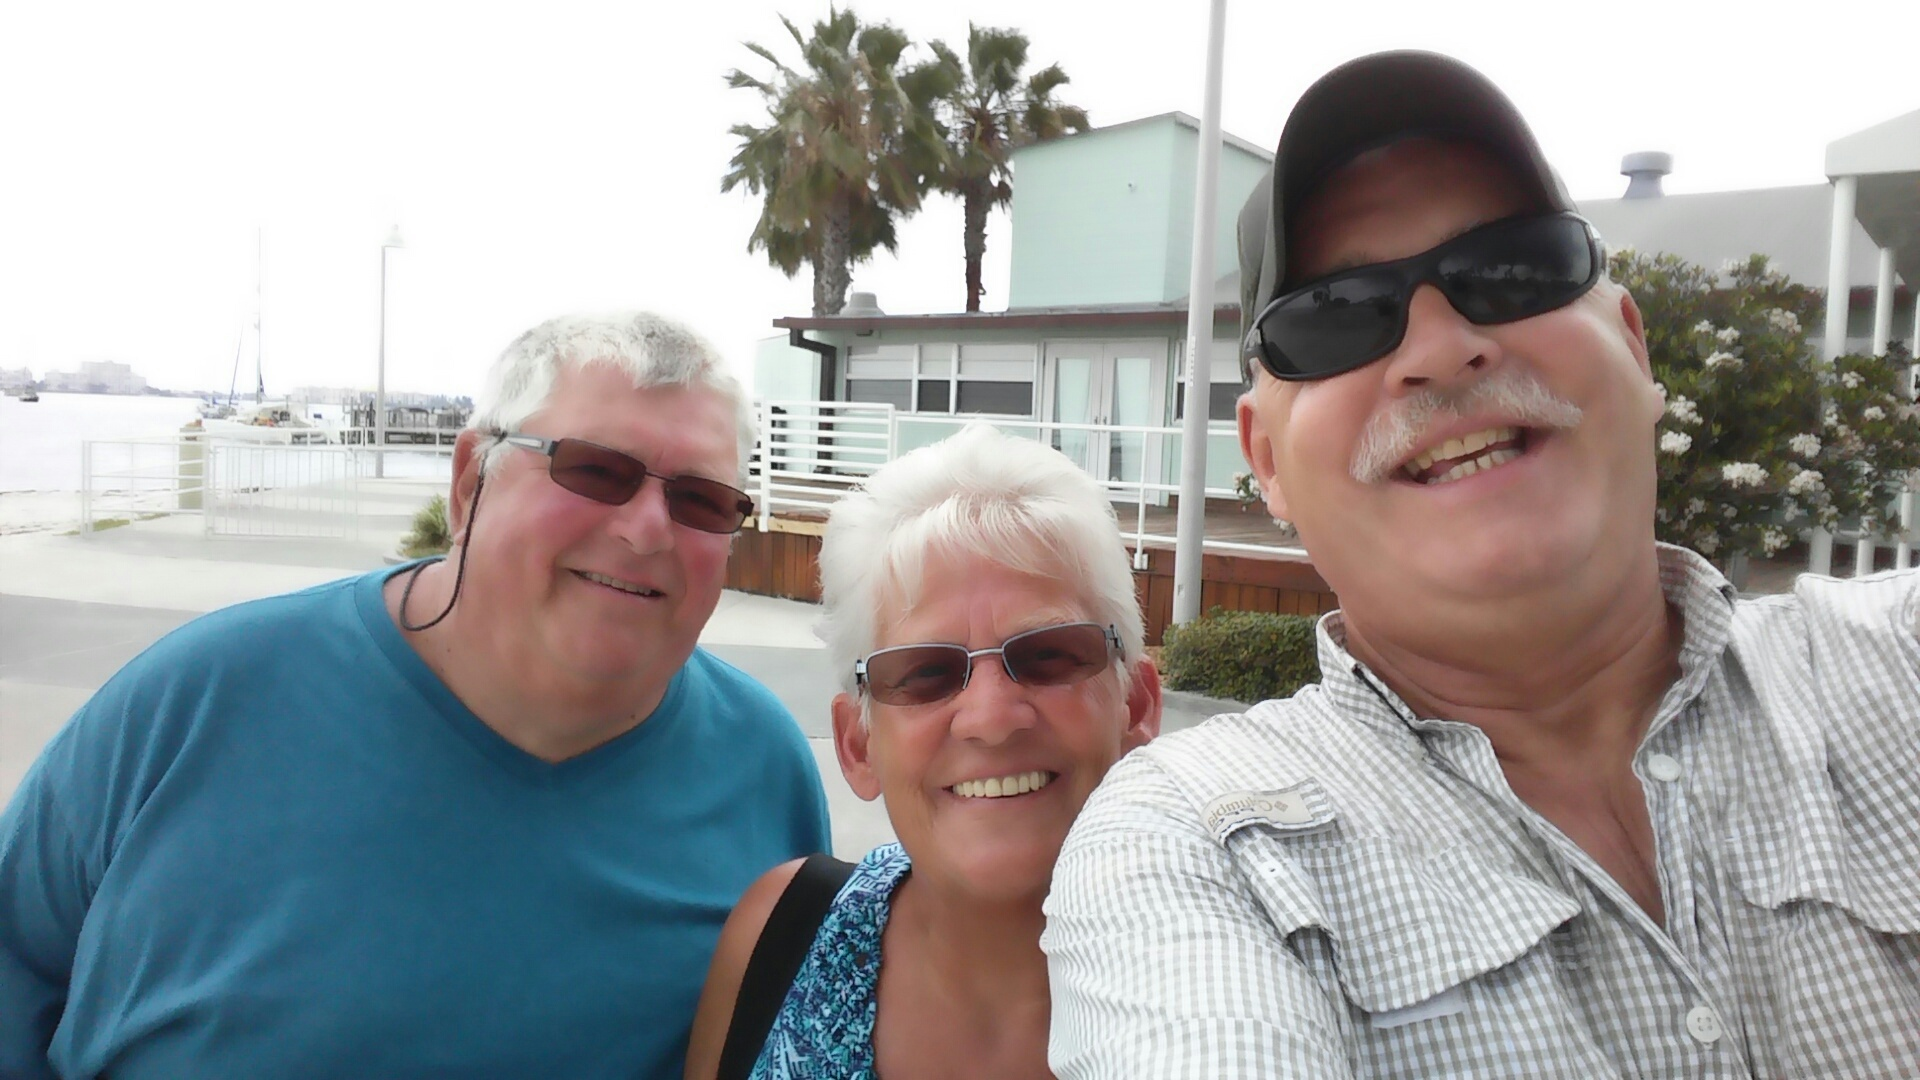 Jürgen Wittmann with  Gaby and Engelbert  We meet us 2016 at Gulfport-St. Petersburg<br /> We like to think back to Jürgen. If it was possible at all, we visited each other when we were on vacation in Florida. We remember his friendly manner and his laughter. We'll miss him. <br /> Gaby and Engelbert Wiedmann from Germany